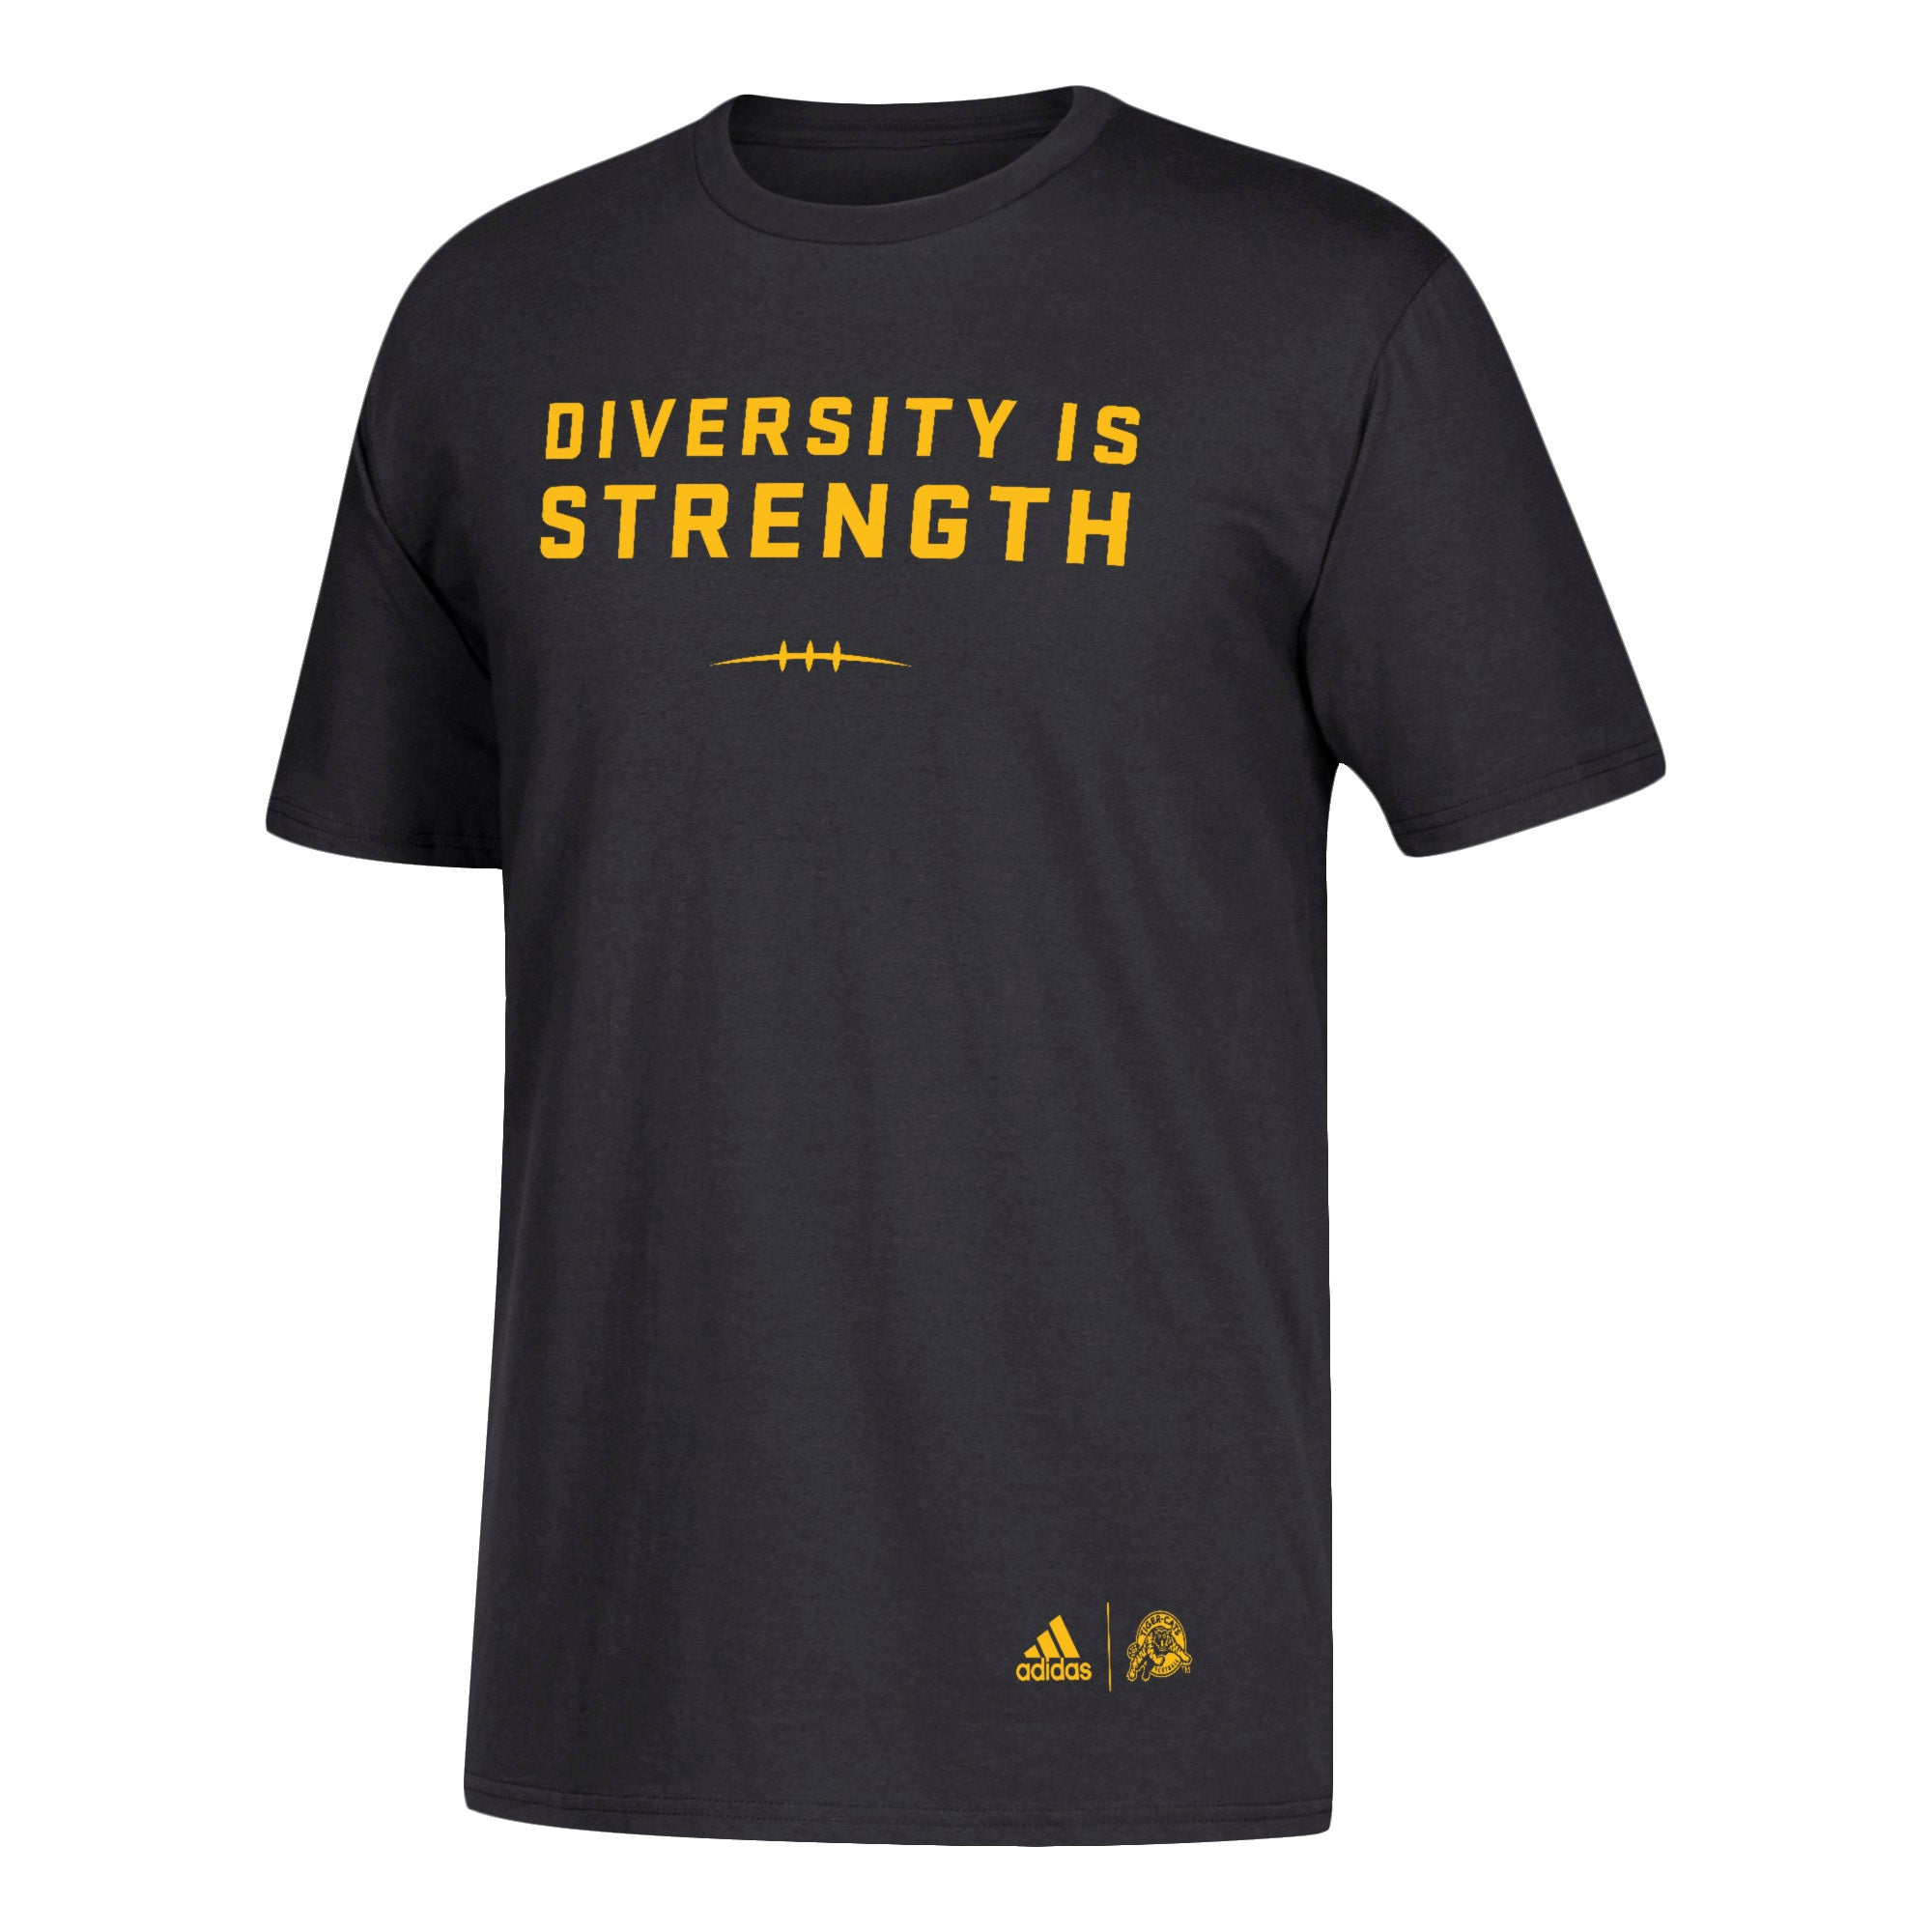 Hamilton Tiger-Cats Diversity is Strength Shirt